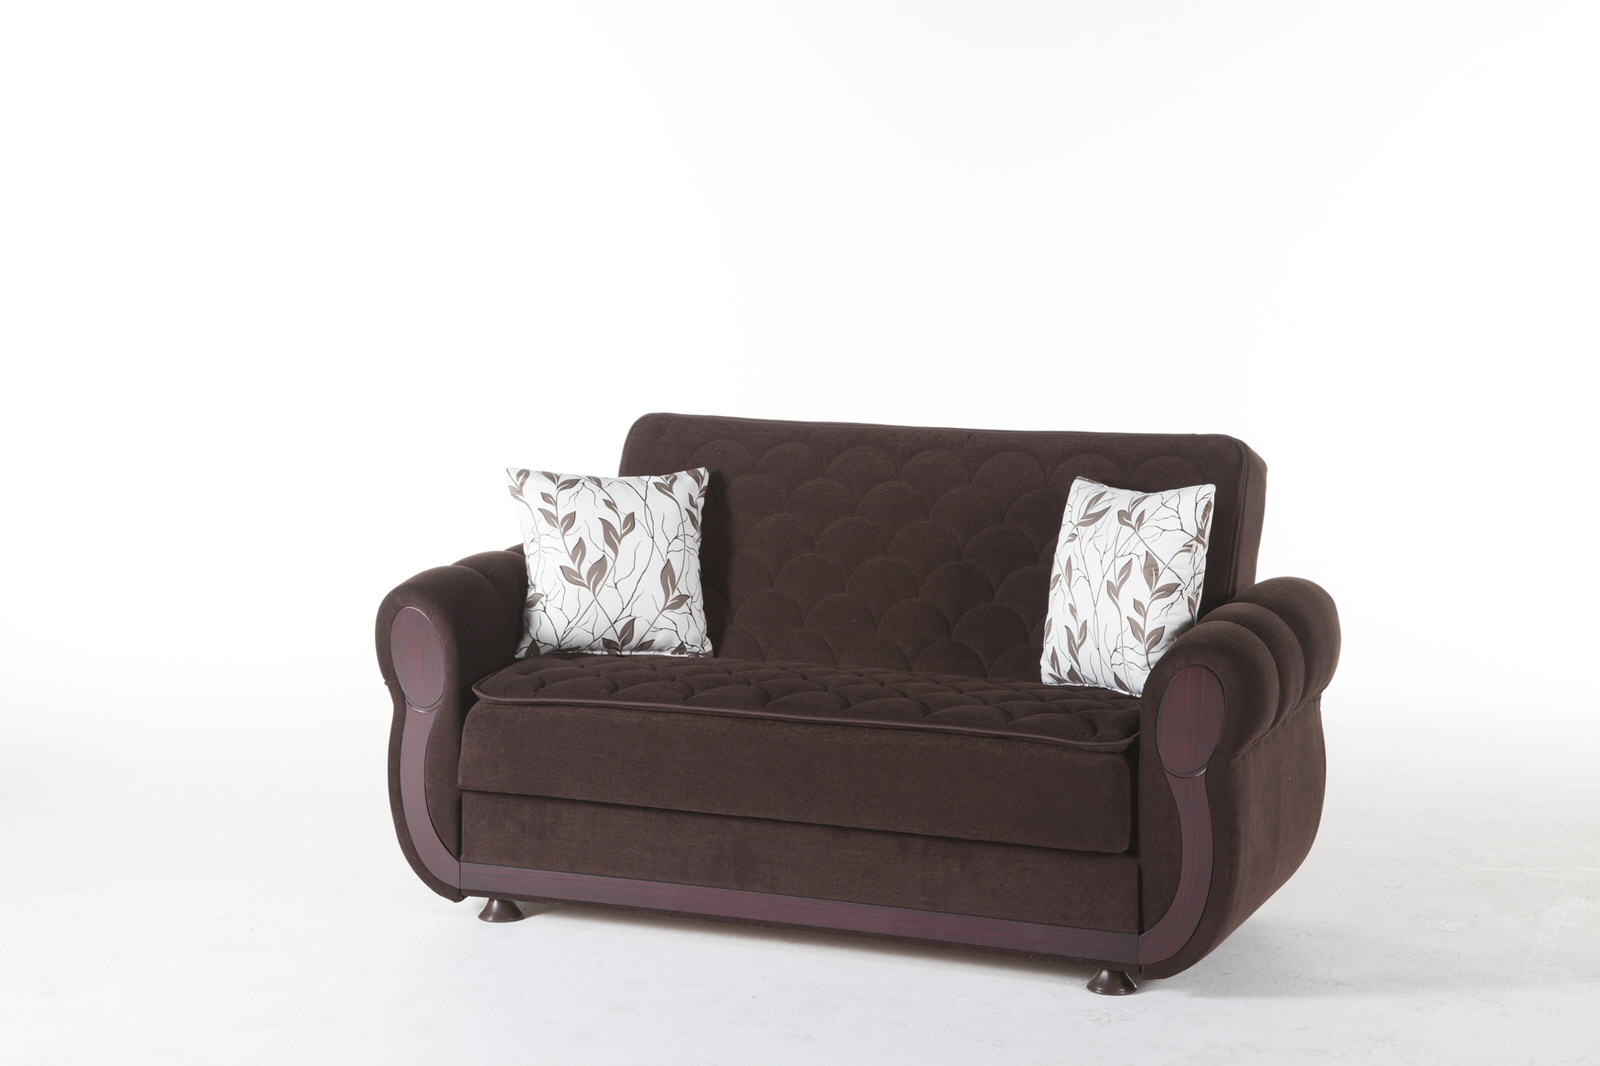 argos brooklyn sofa large next snuggle chair bed colins brown love and set by istikbal sunset